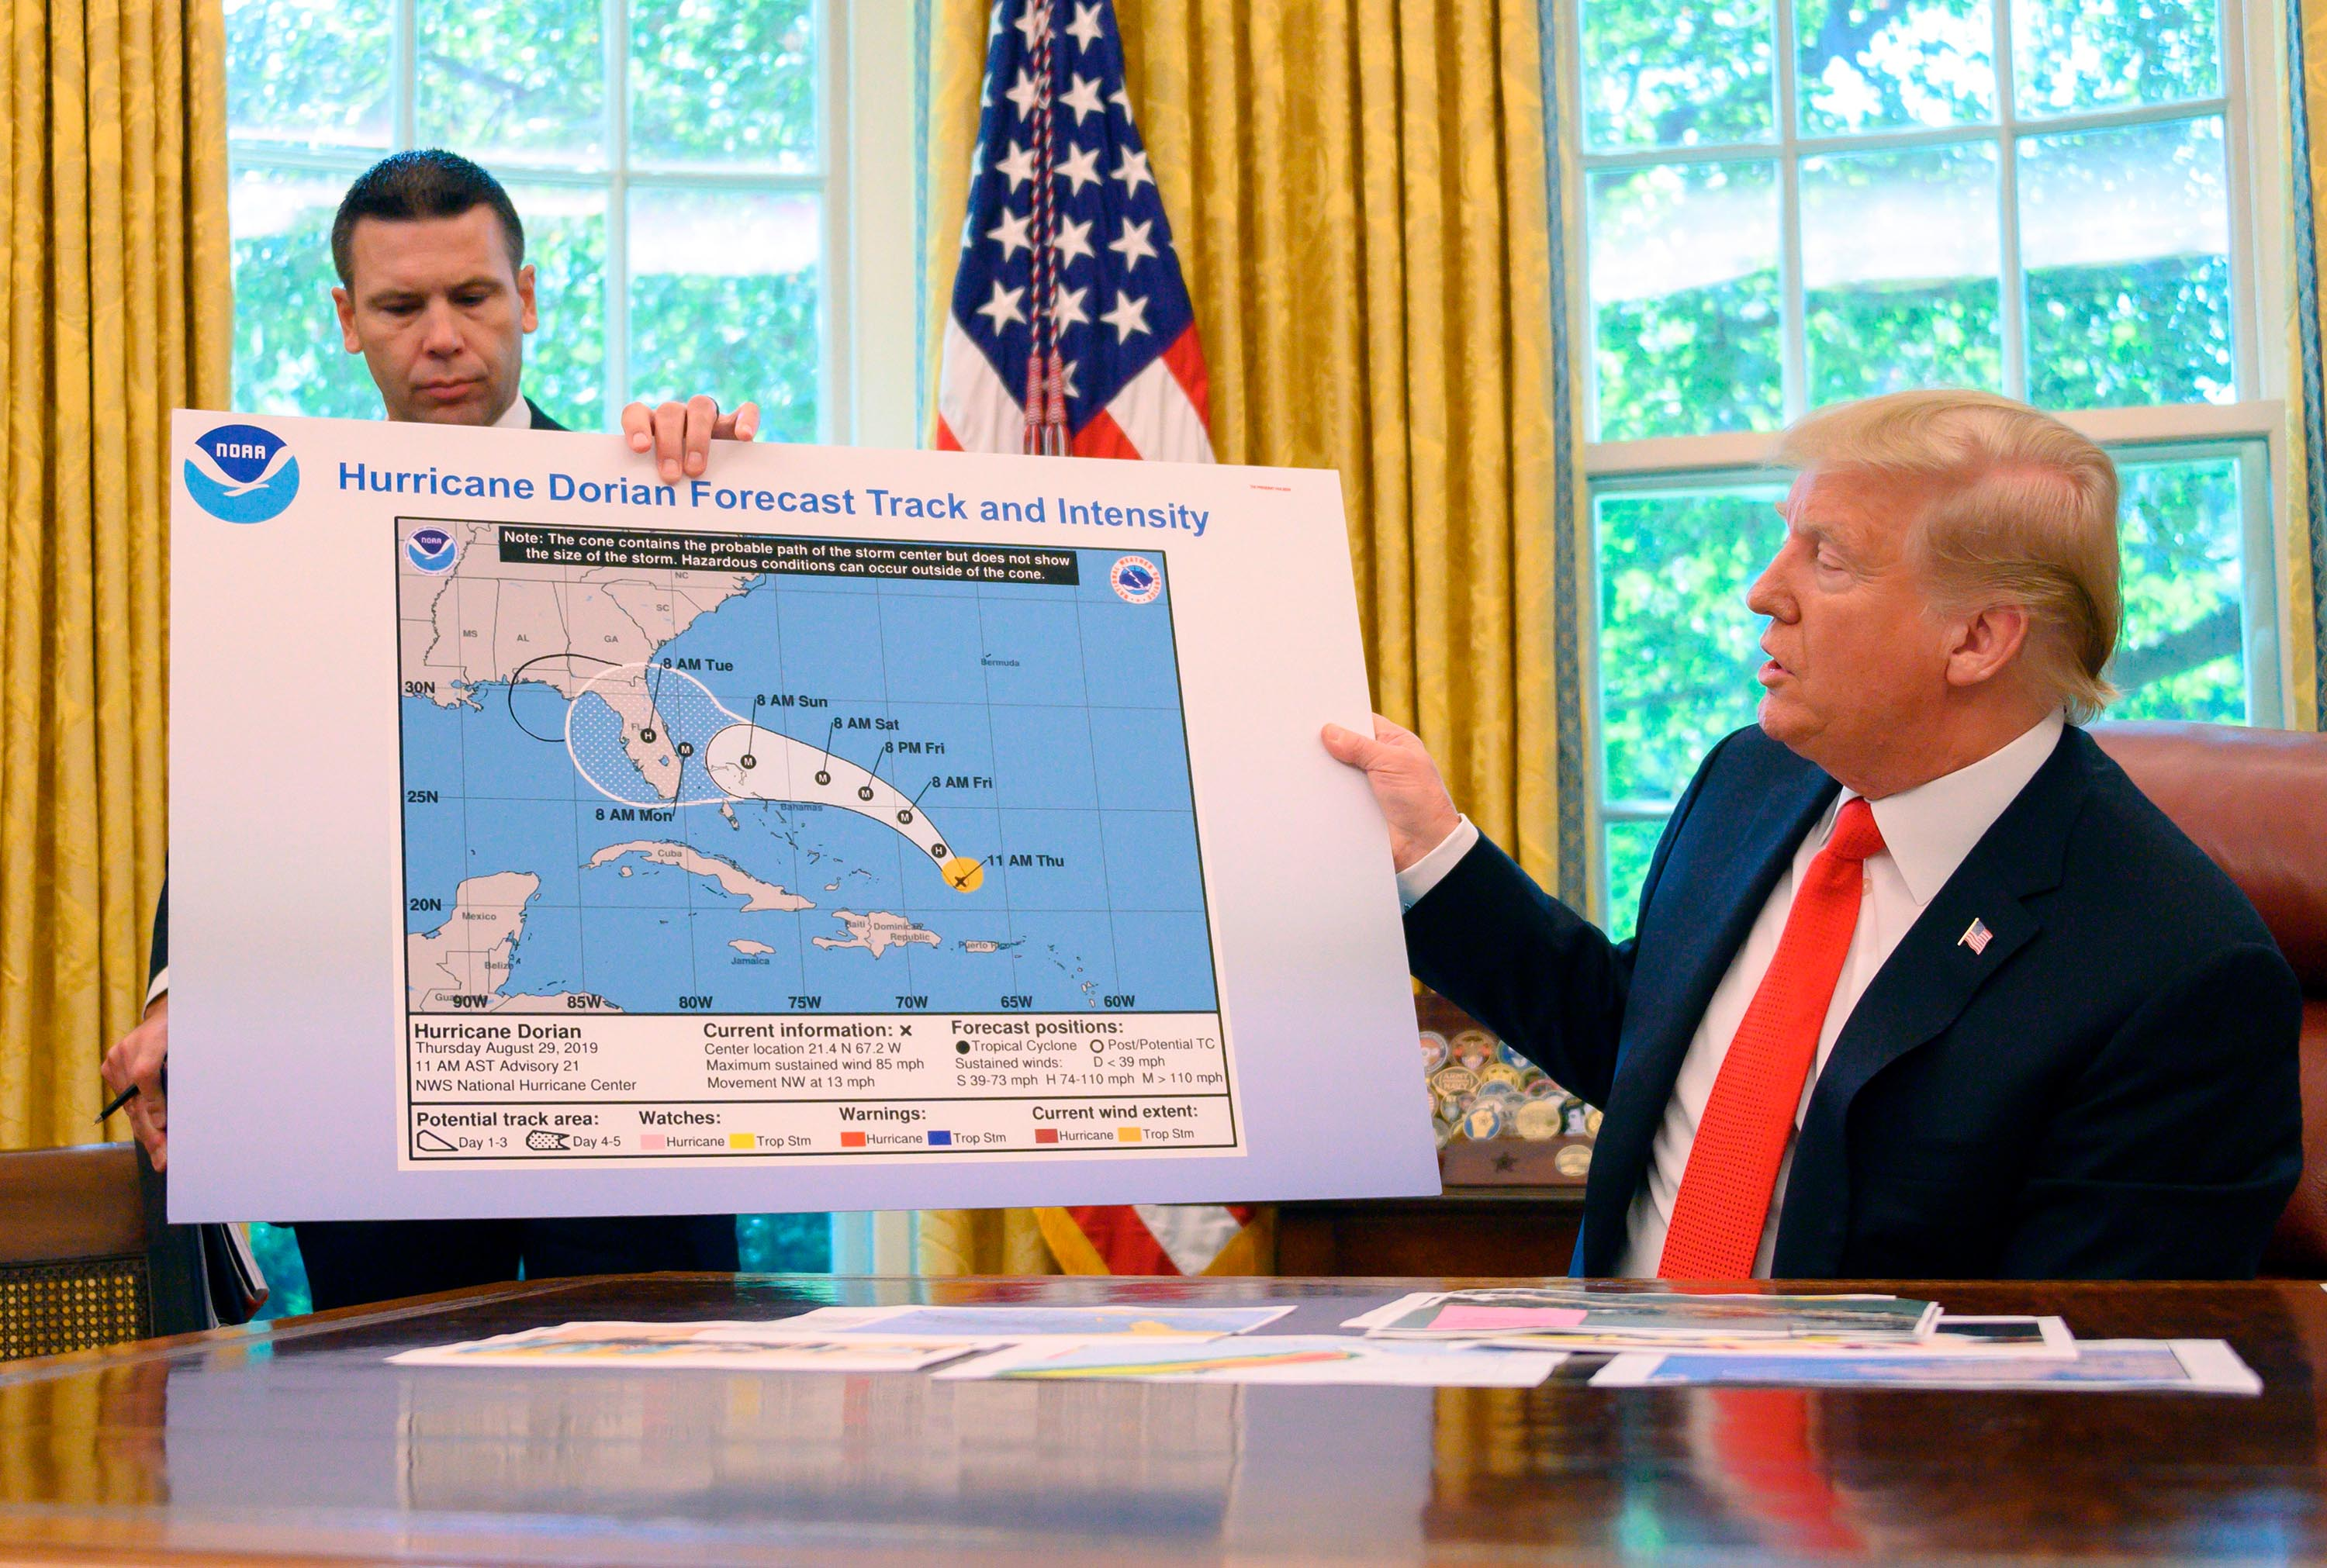 Watchdog blasts Commerce Department for siding with Trump over erroneous Hurricane Dorian forecast